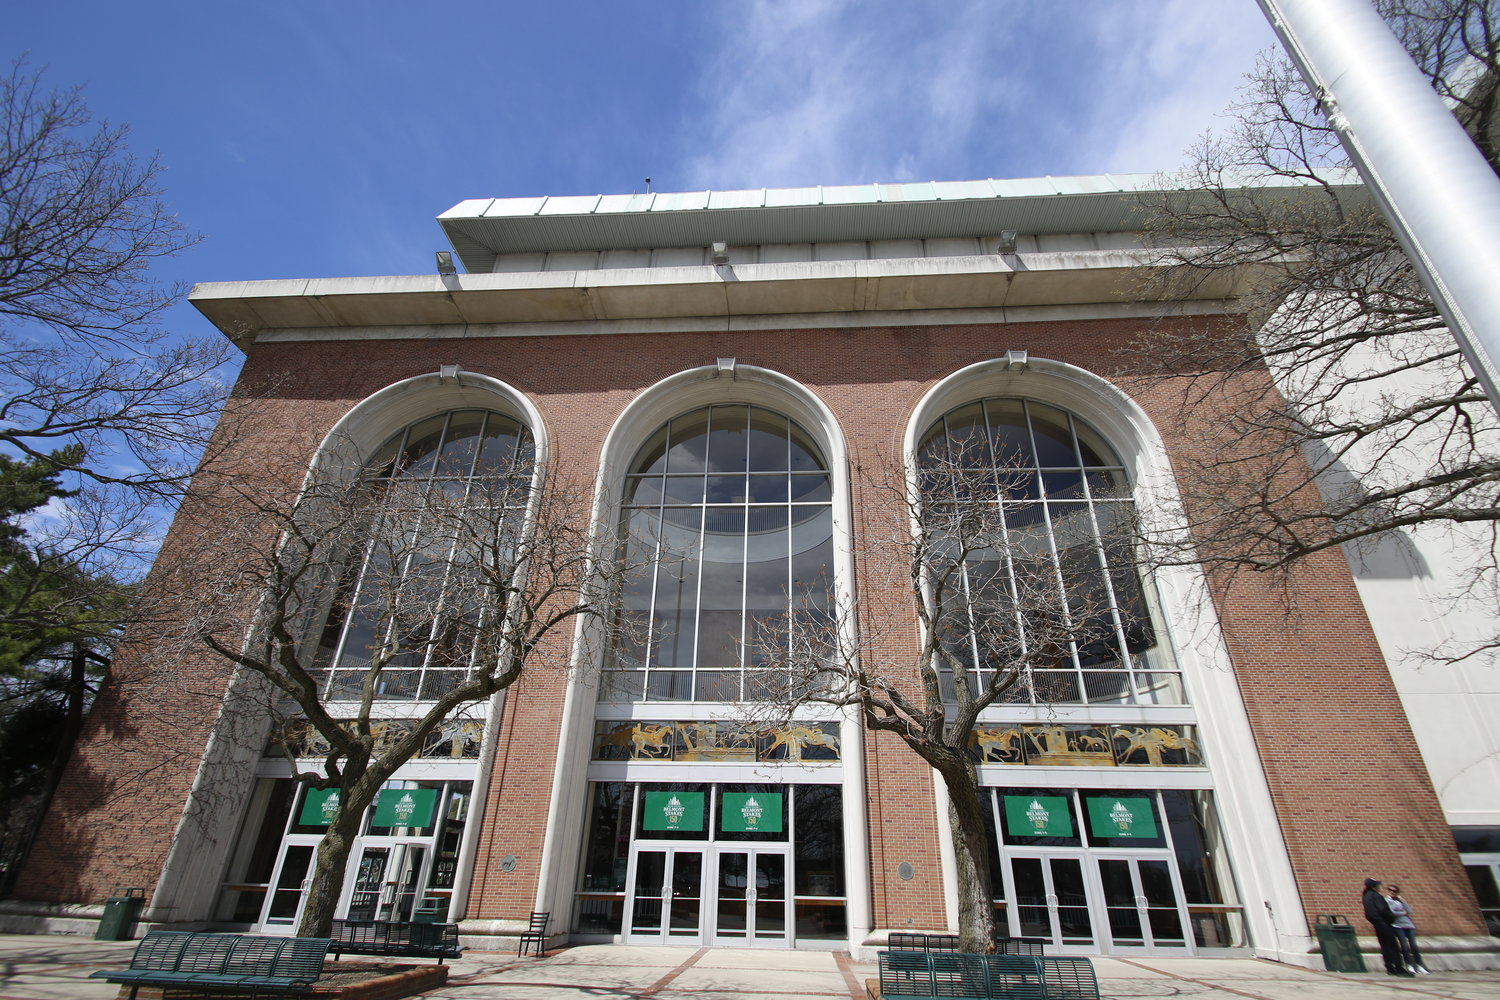 After more than 10 years, legislation to establish a Belmont Park community advisory board has been approved by both houses of the New York State Legislature.